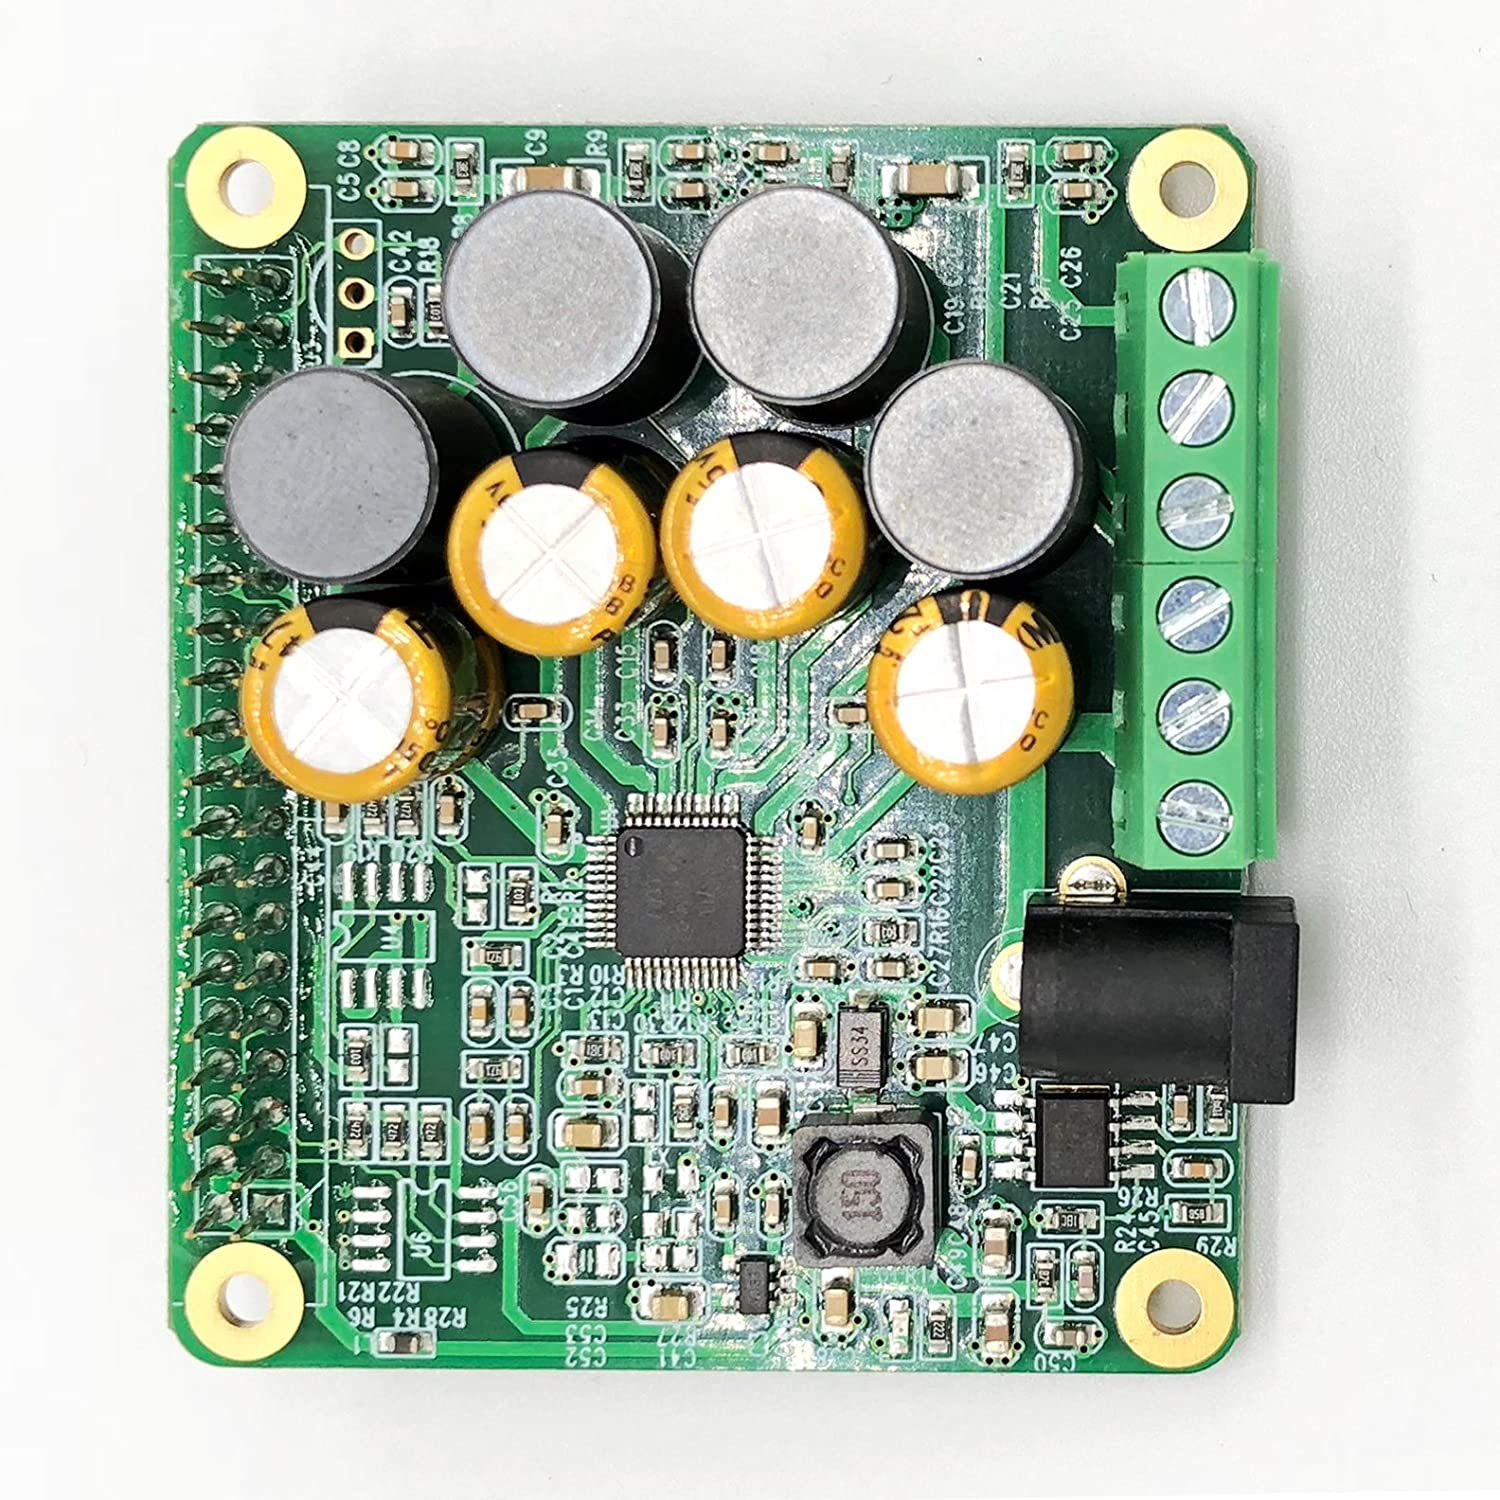 Inno Maker Raspberry Pi Hifi Amp Hat 25w Class D Power Audio Amplifier Circuit Very Simple Tas5713 Expansion Board Module For 3 B Zero Nichicon